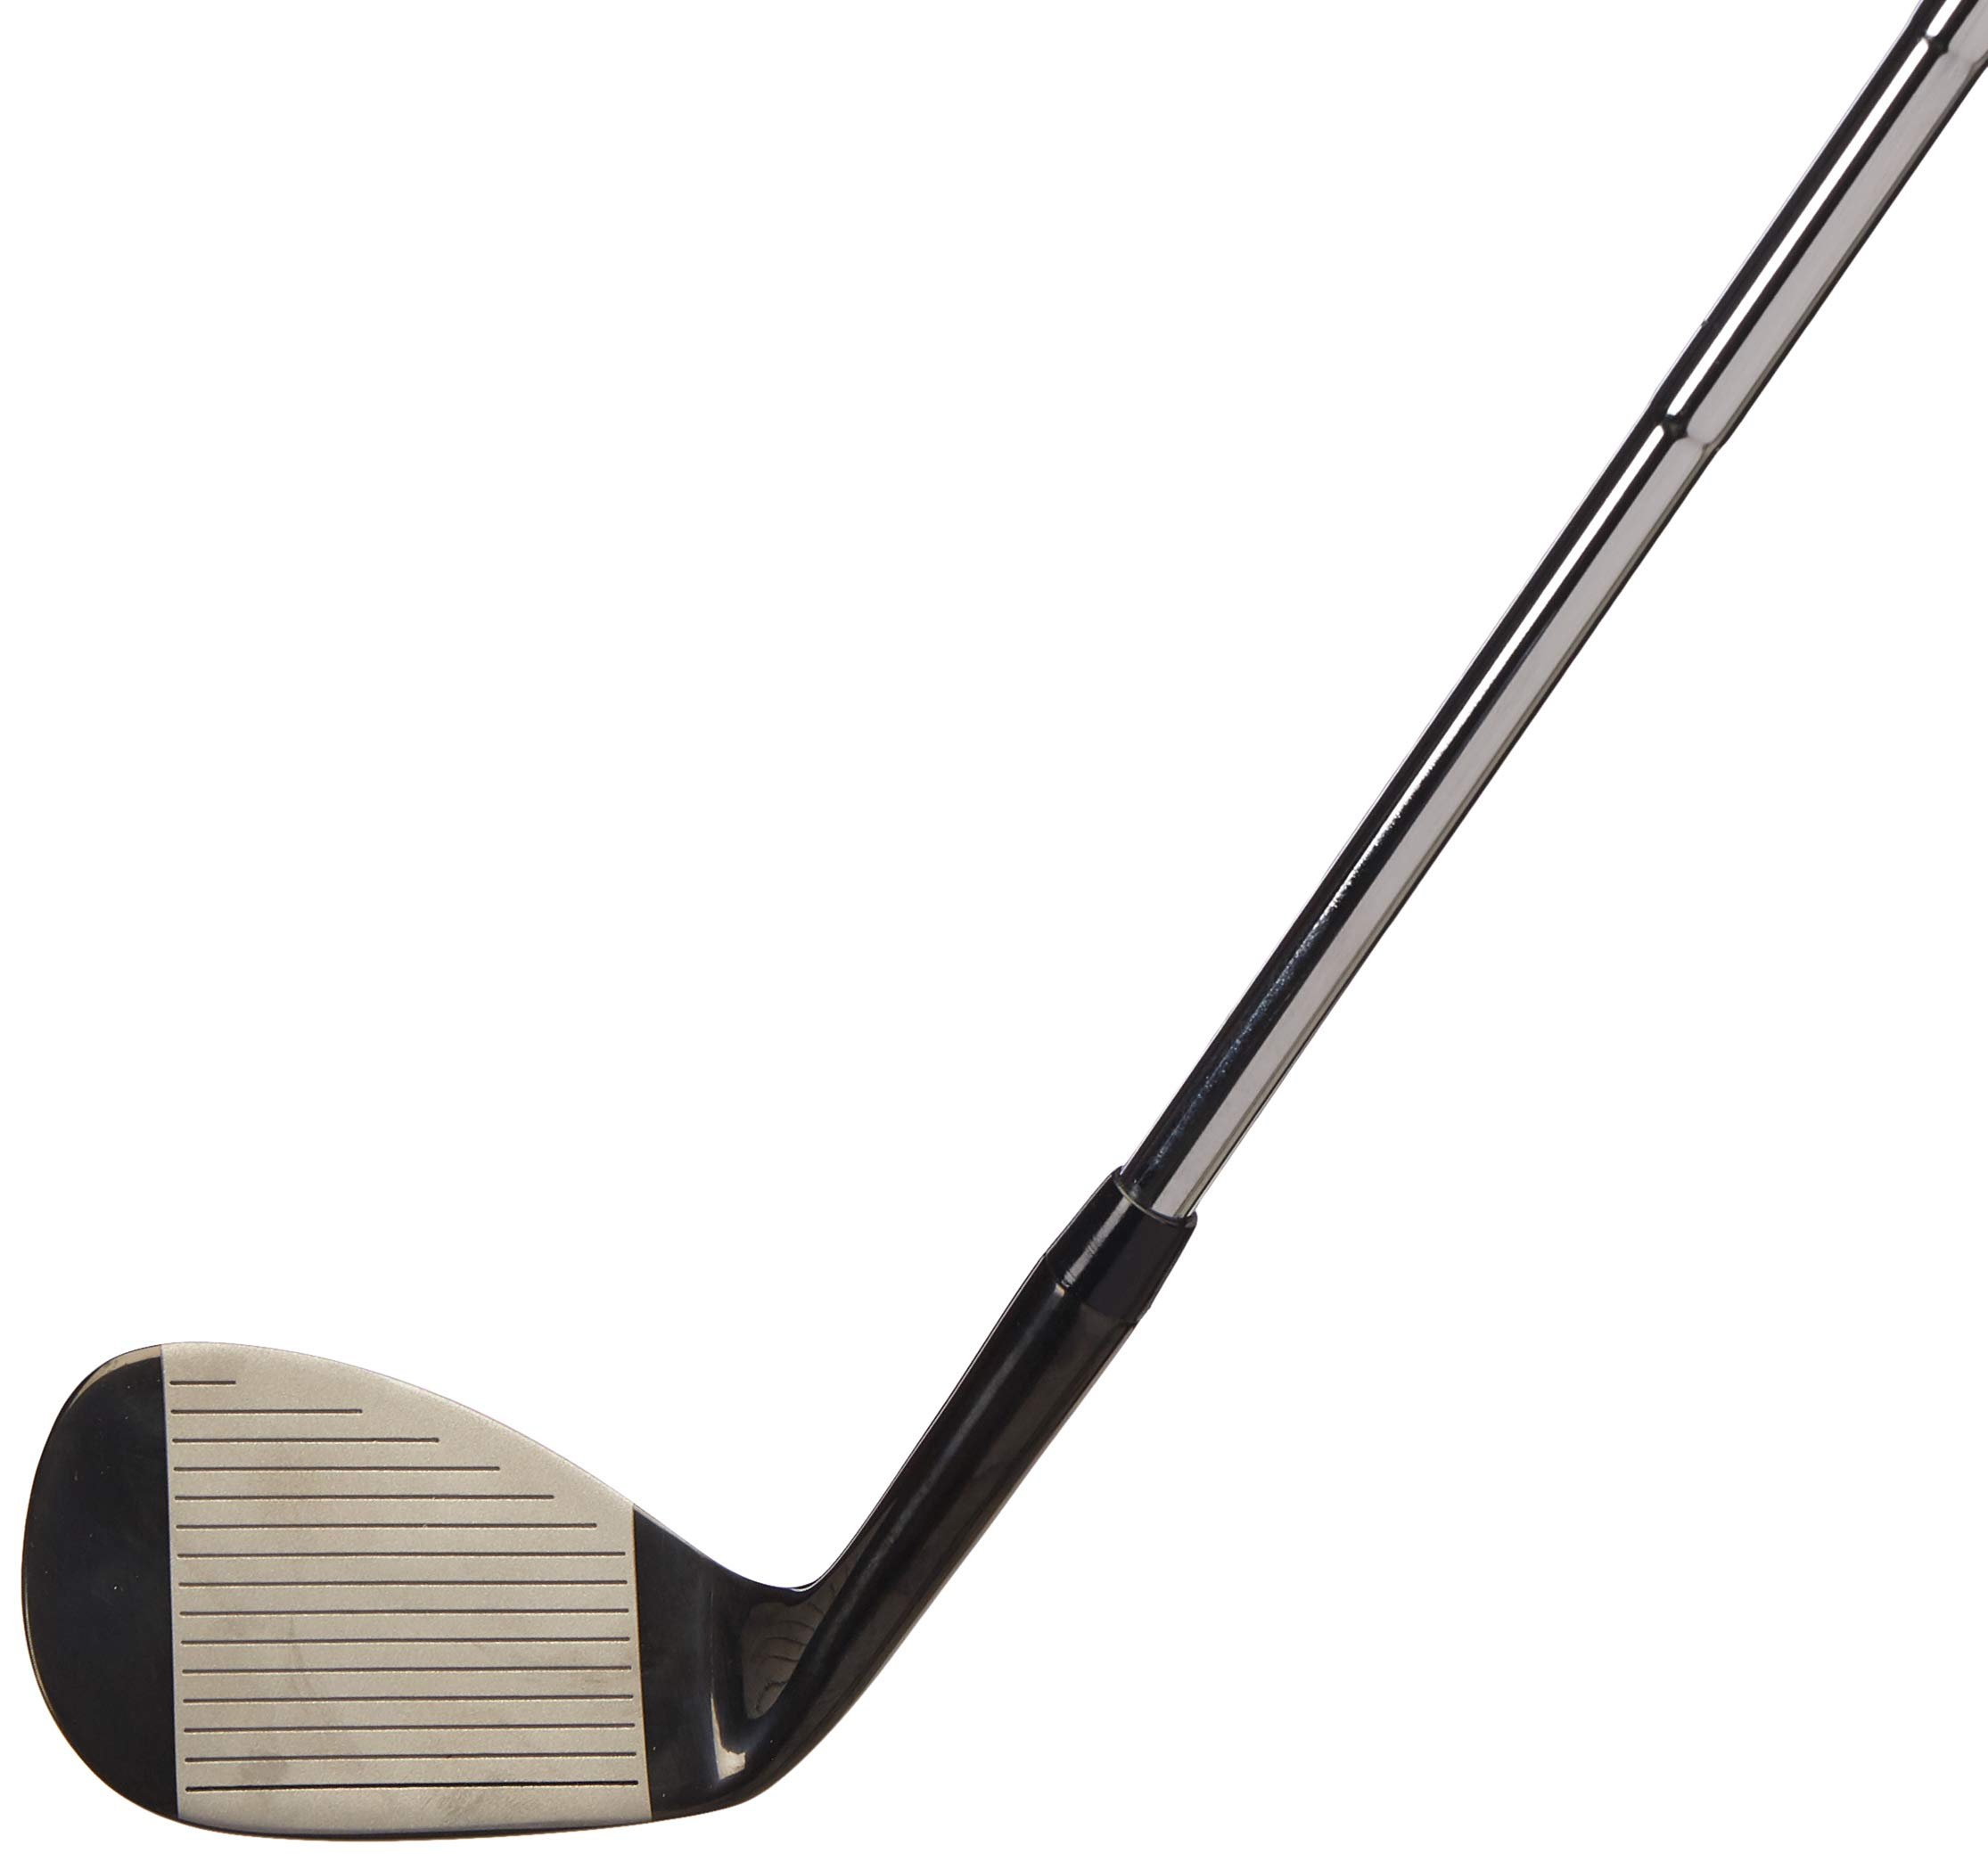 Wilson Staff Men's Harmonized Black Chrome Golf Wedge, Right Hand, 56.0-Degree by Wilson